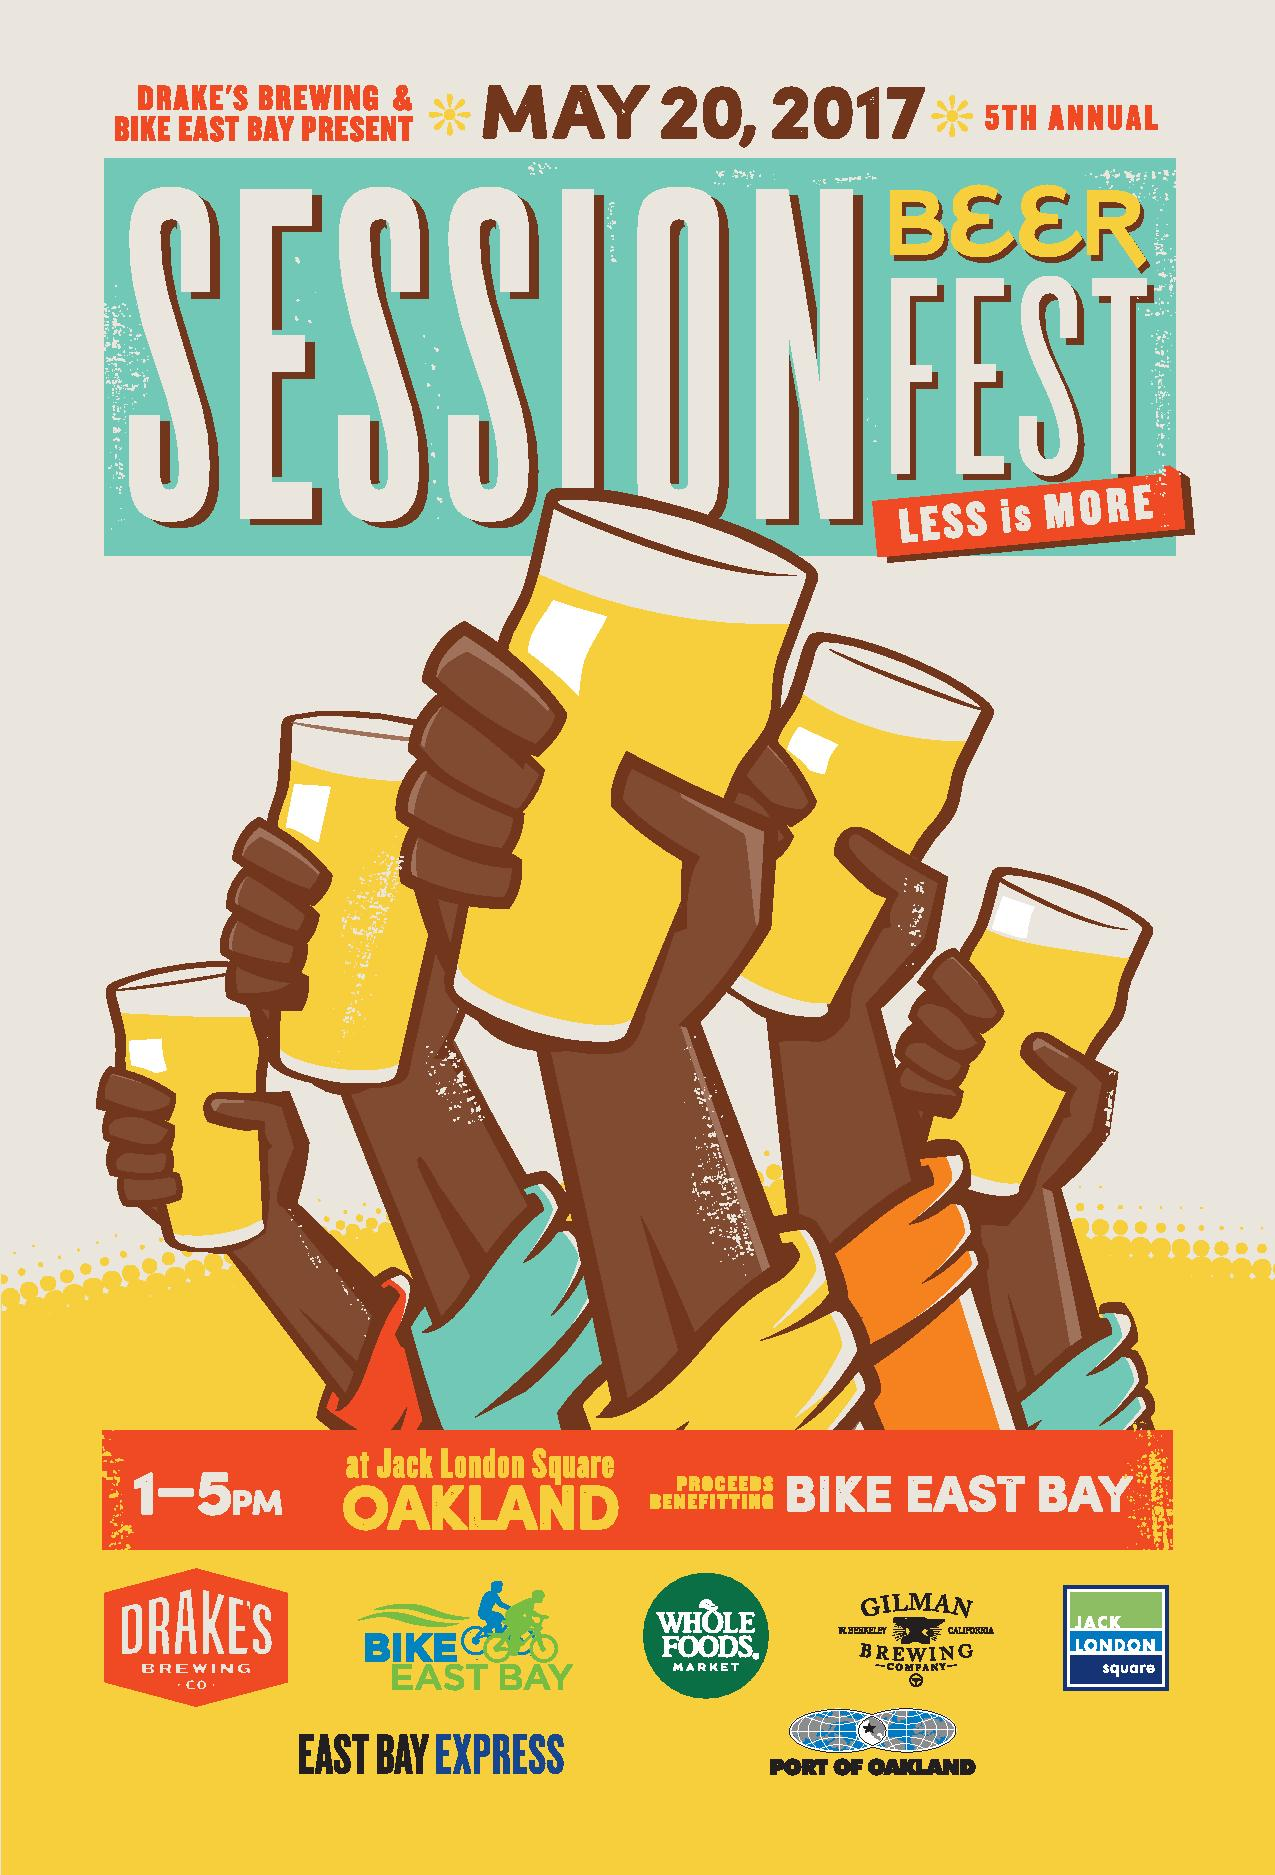 5th Annual Session Beer Fest | Bike East Bay